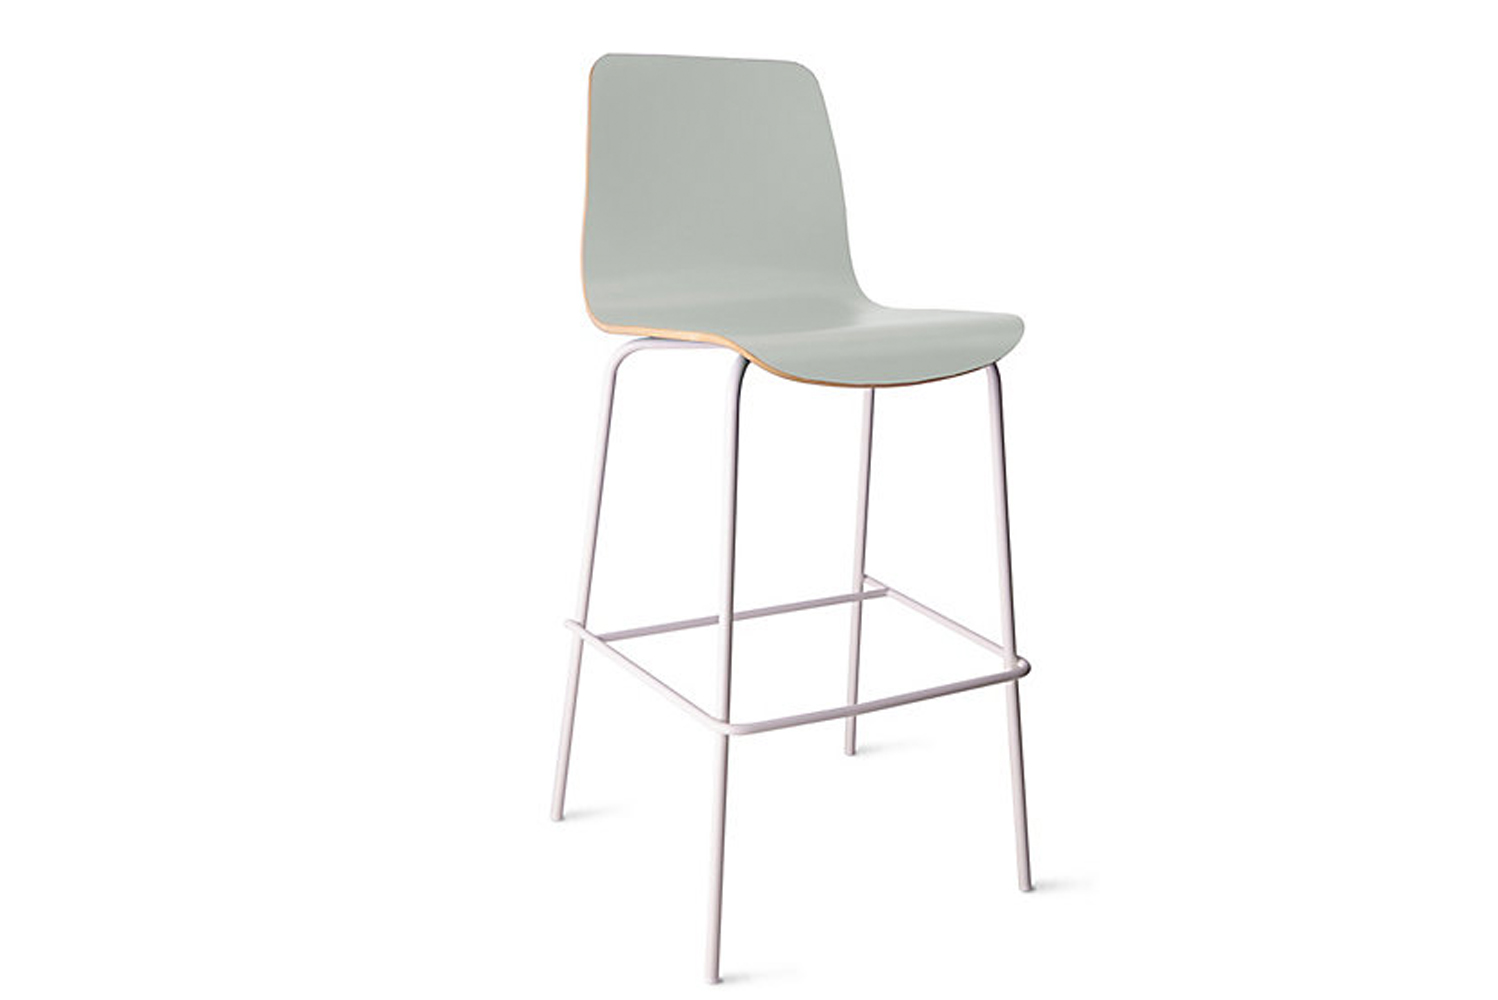 The bases of the seats are powder-coated in black or white, or polished chrome.